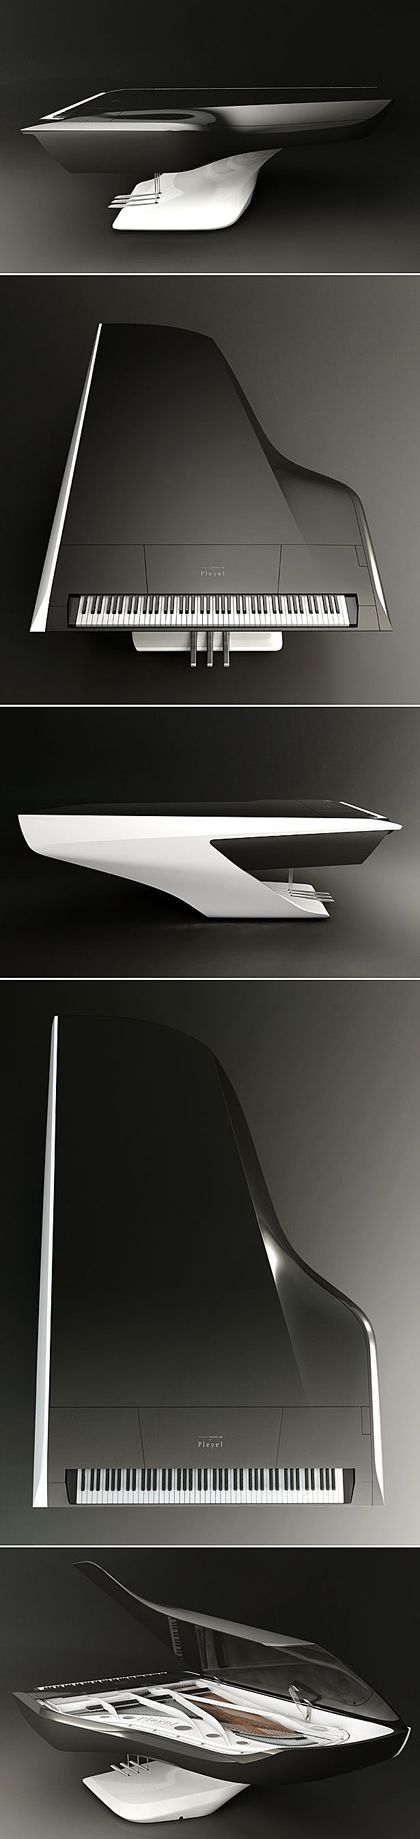 Futuristic Grand Piano by Peugeot Design Lab (Future Tech Mom)